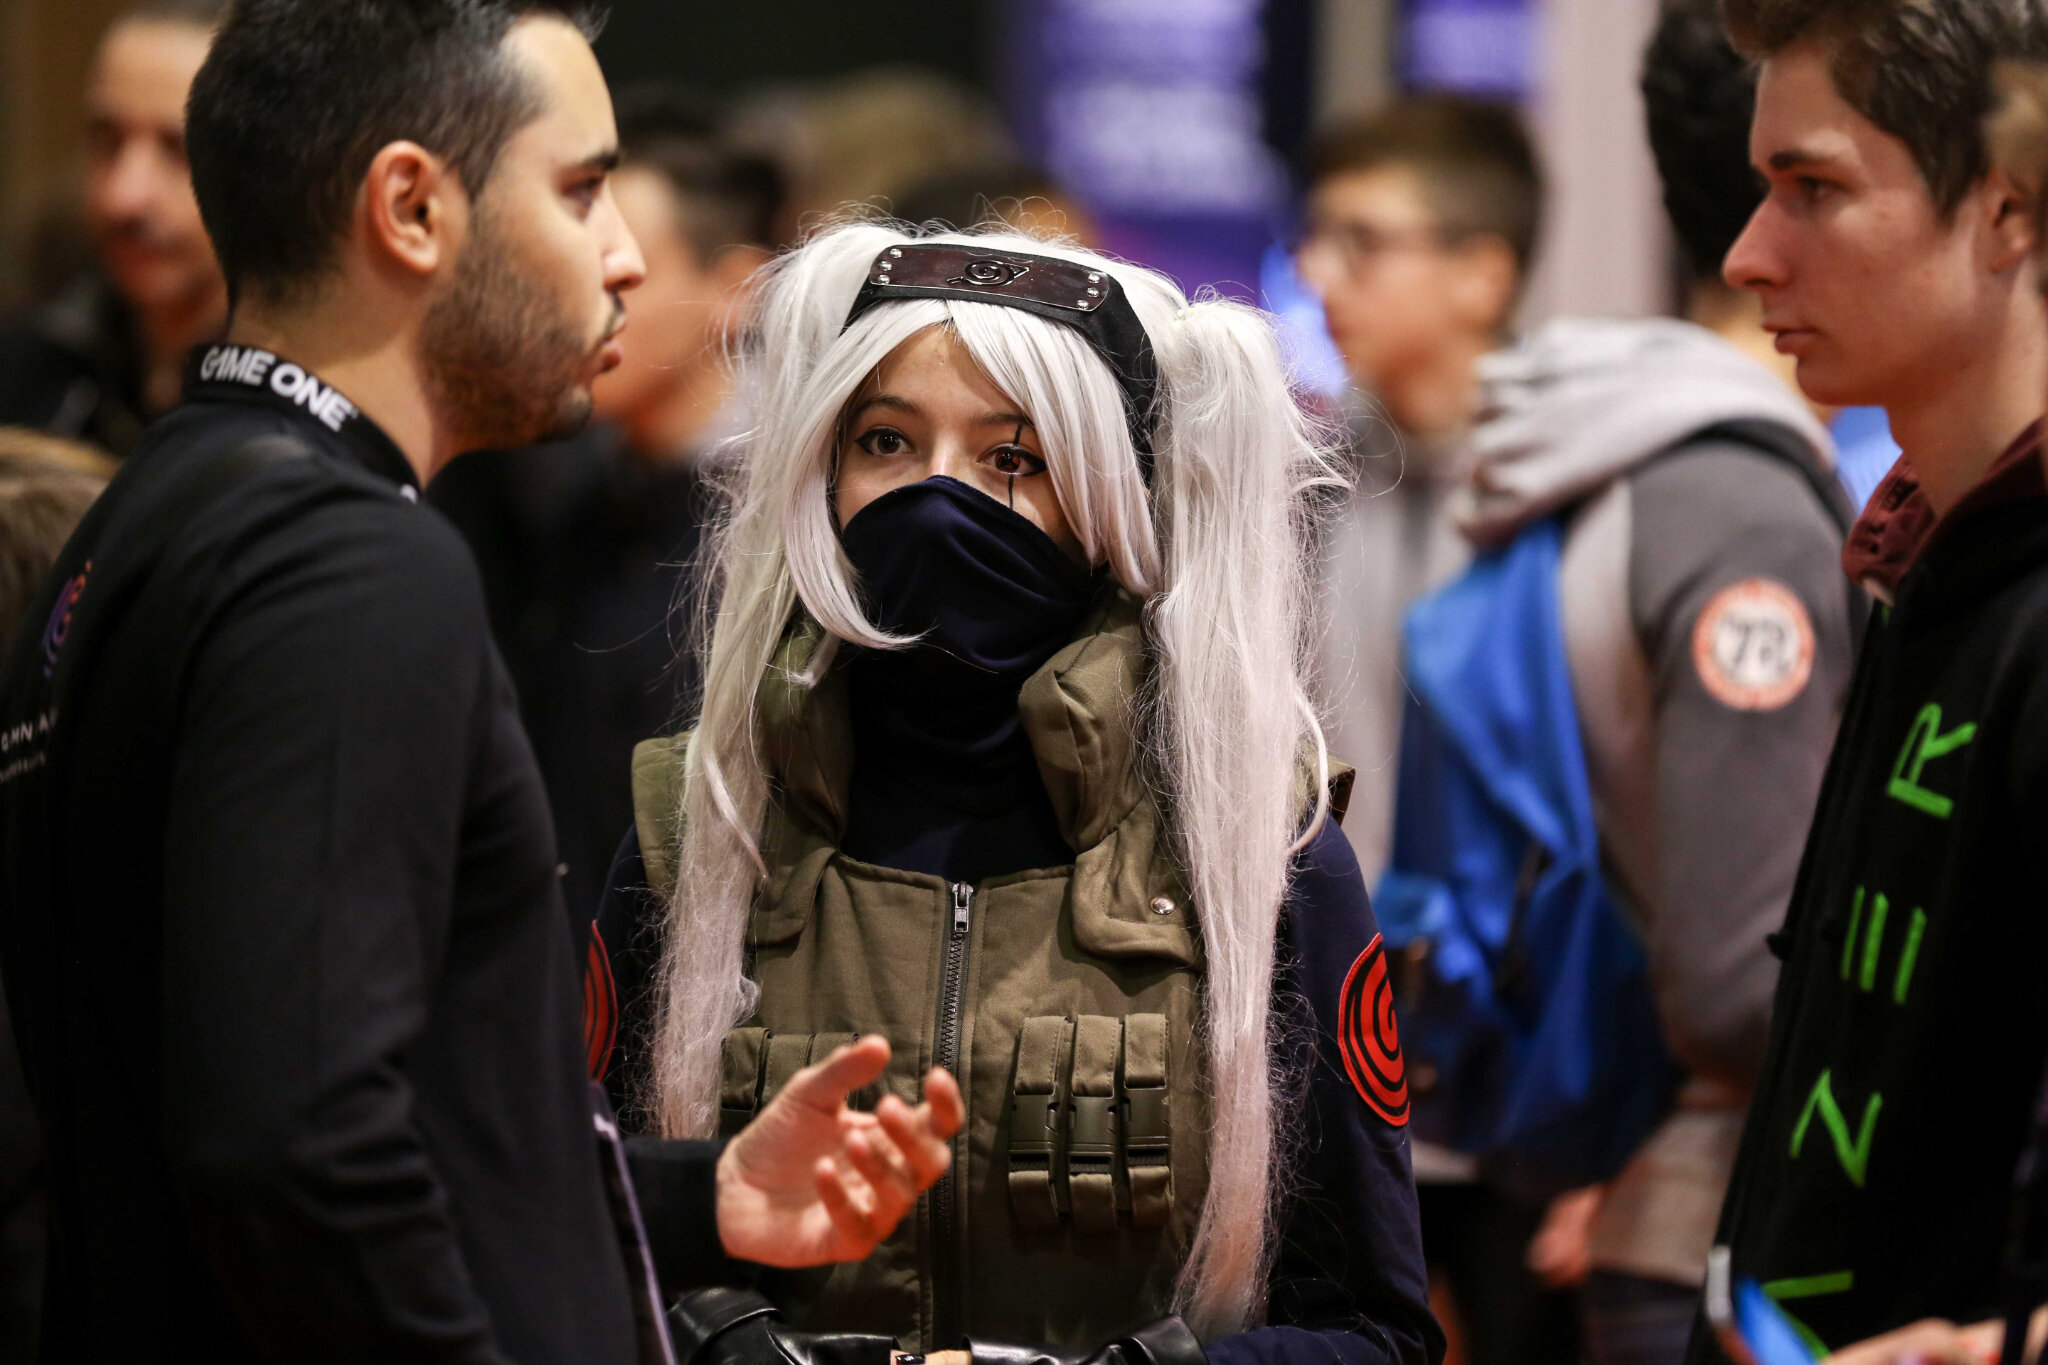 Games Week. Le cosplay ou l'art du déguisement. © Michel Stoupak. Ven 26.10.2018, 09h49m42.